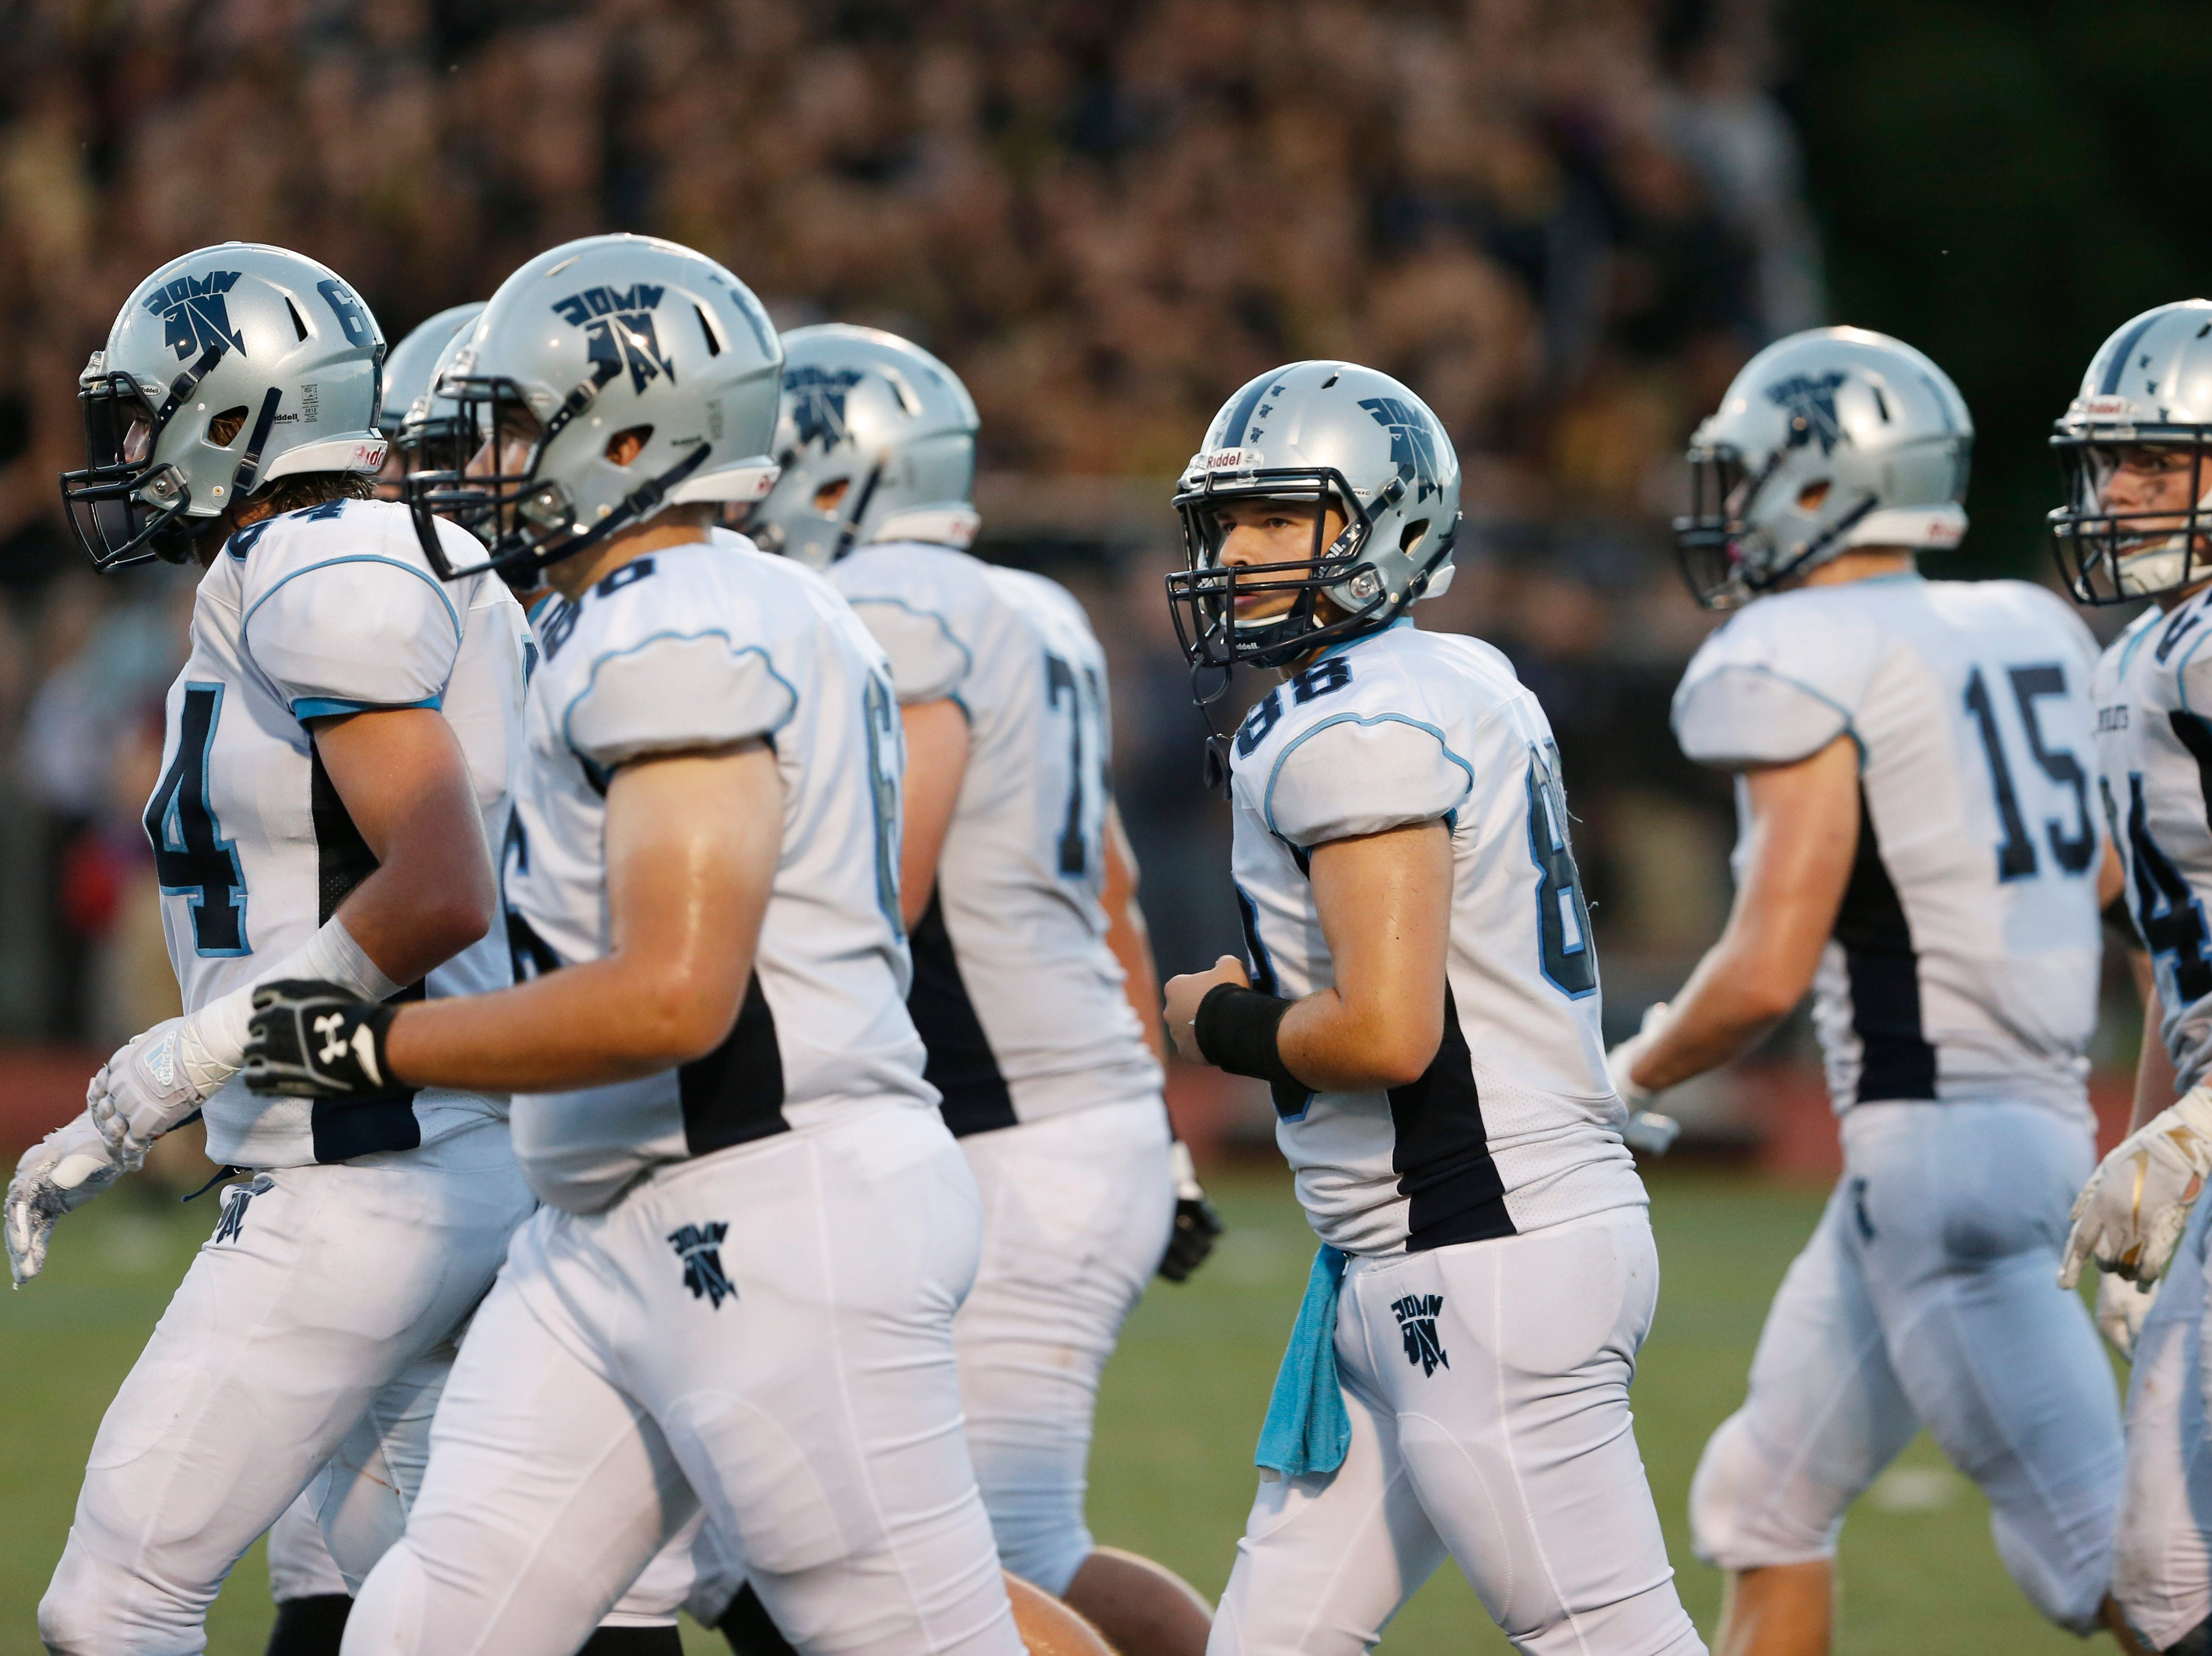 The John Jay offense breaks its huddle and walks to the line of scrimmage against Arlington during a Sept. 14 game.